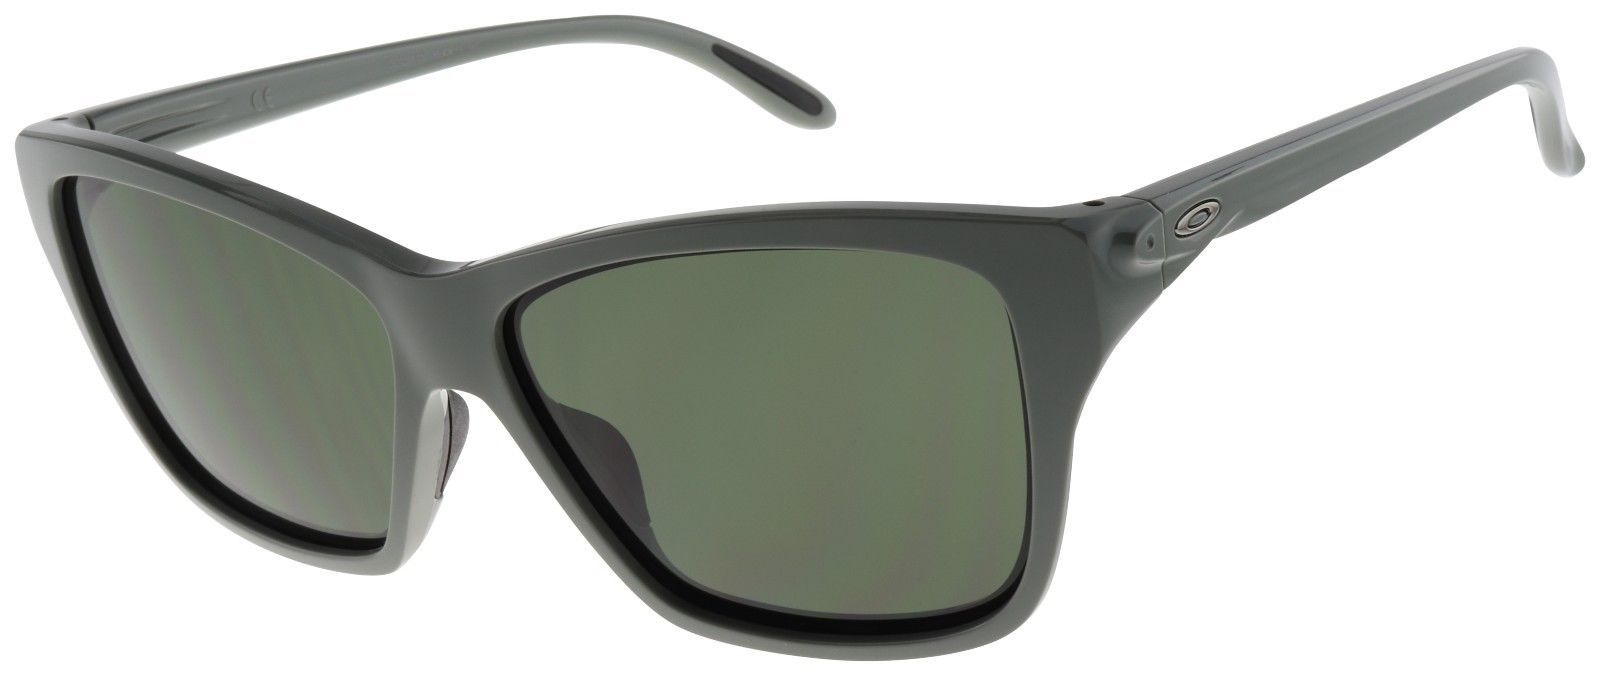 965be3ec61f1d Oakley Women s Hold On Sunglasses OO9298-05 Light Olive with Dark Grey Lens